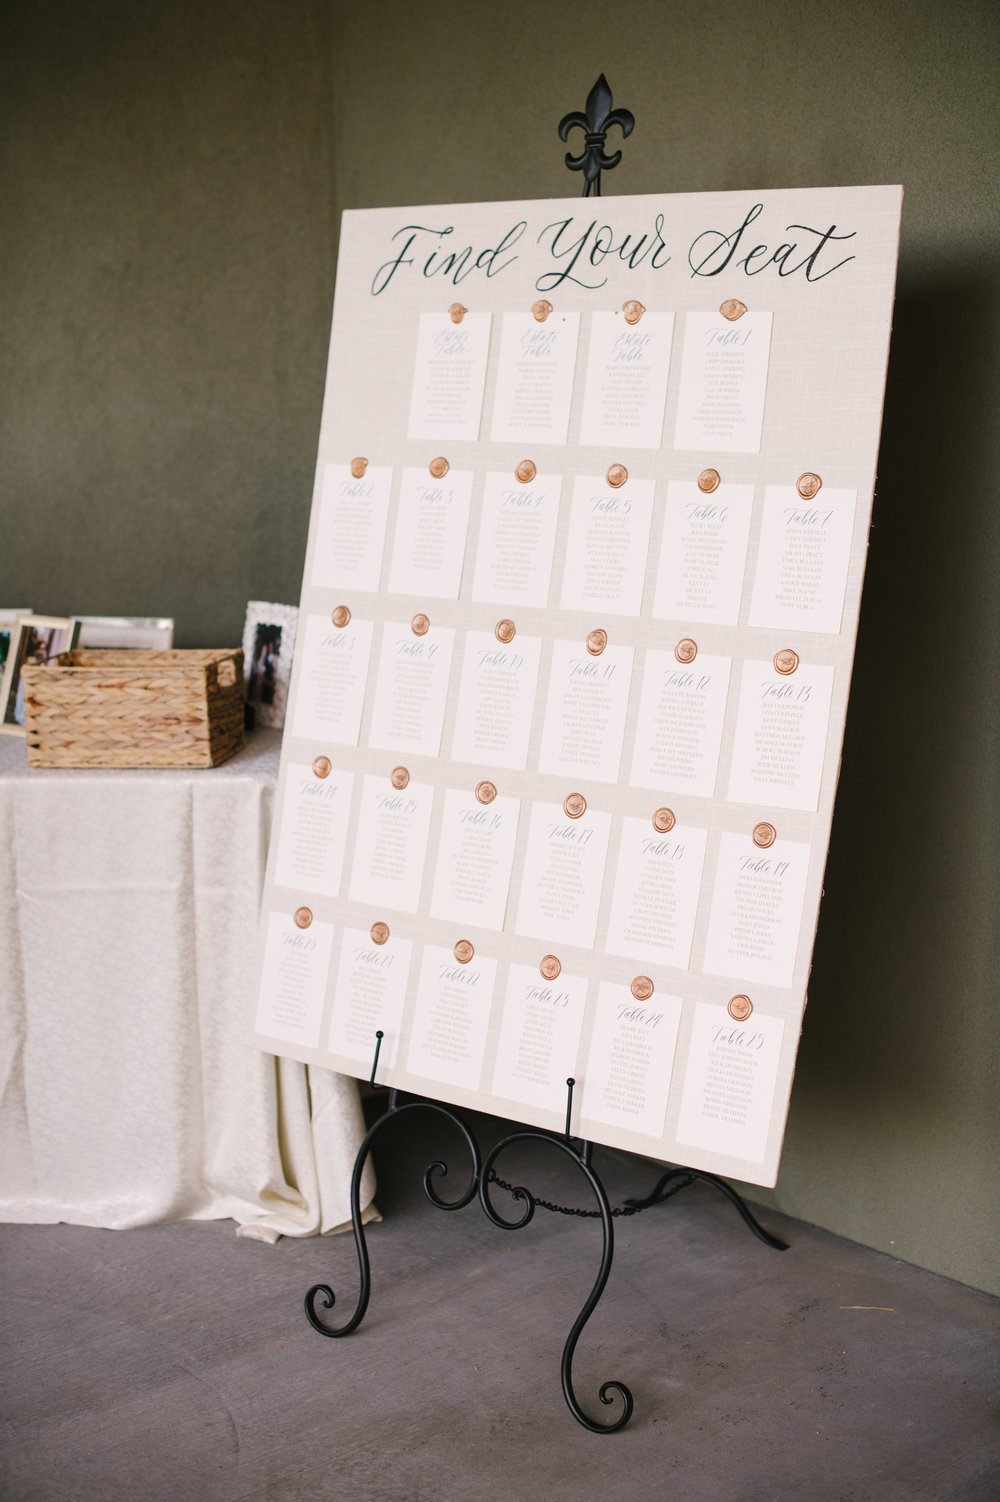 This linen seating chart for a wedding at the Atlanta Athletic Club featured more than 300 names, with calligraphy on each card for the table numbers. Photo by    Carrie Joy Photography   .